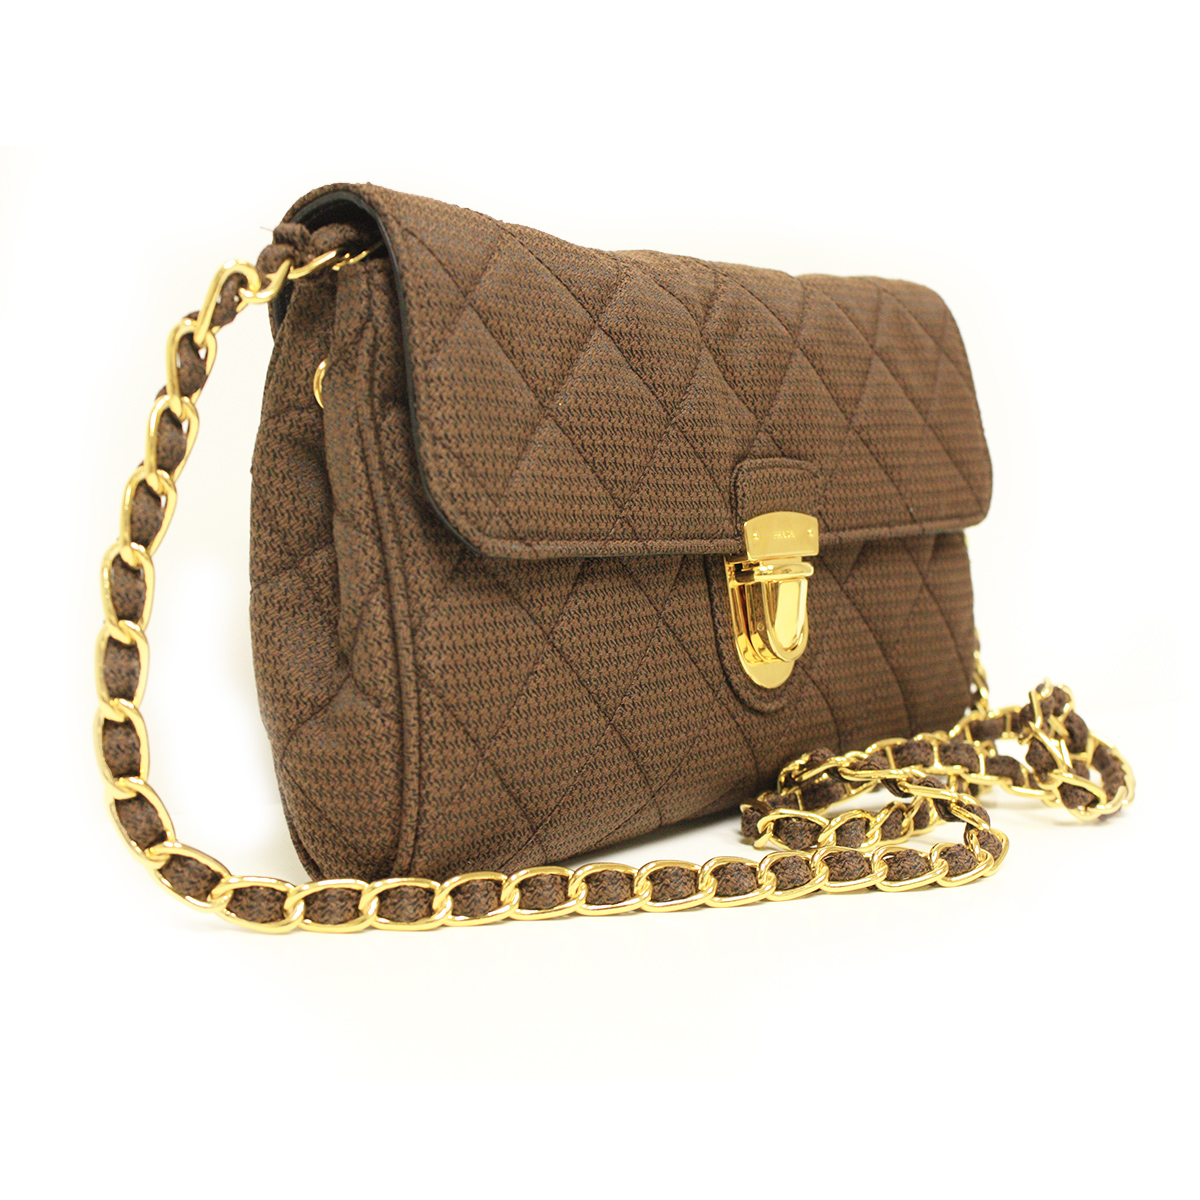 Prada BP0584 Tessuuto Pattina Brown Quilted Nylon Chain Clutch Bag ...